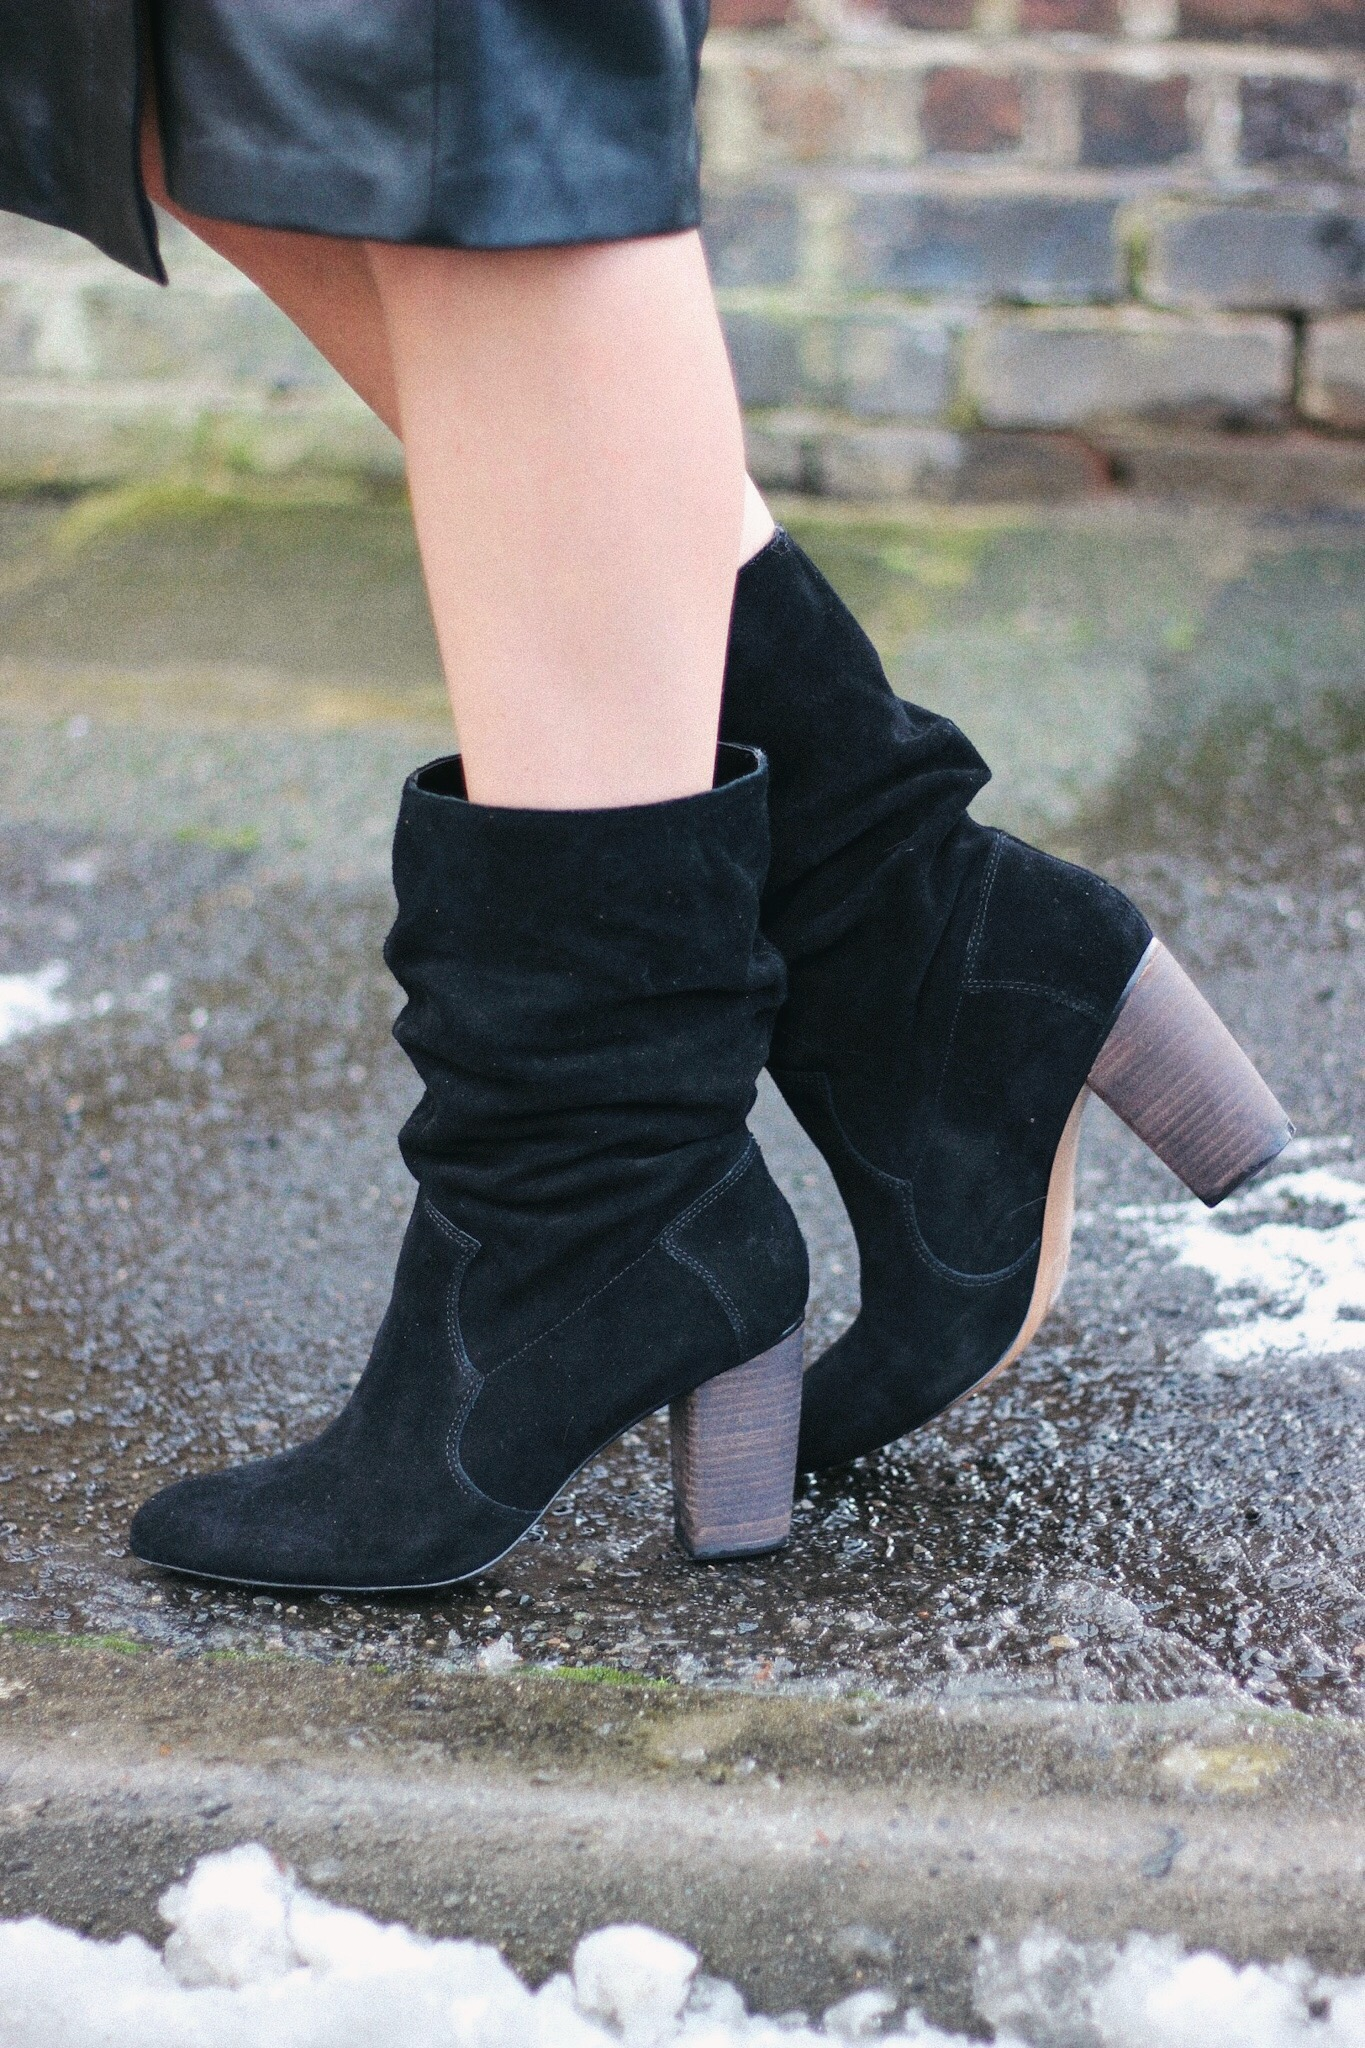 Suede slouch boots from Next street style